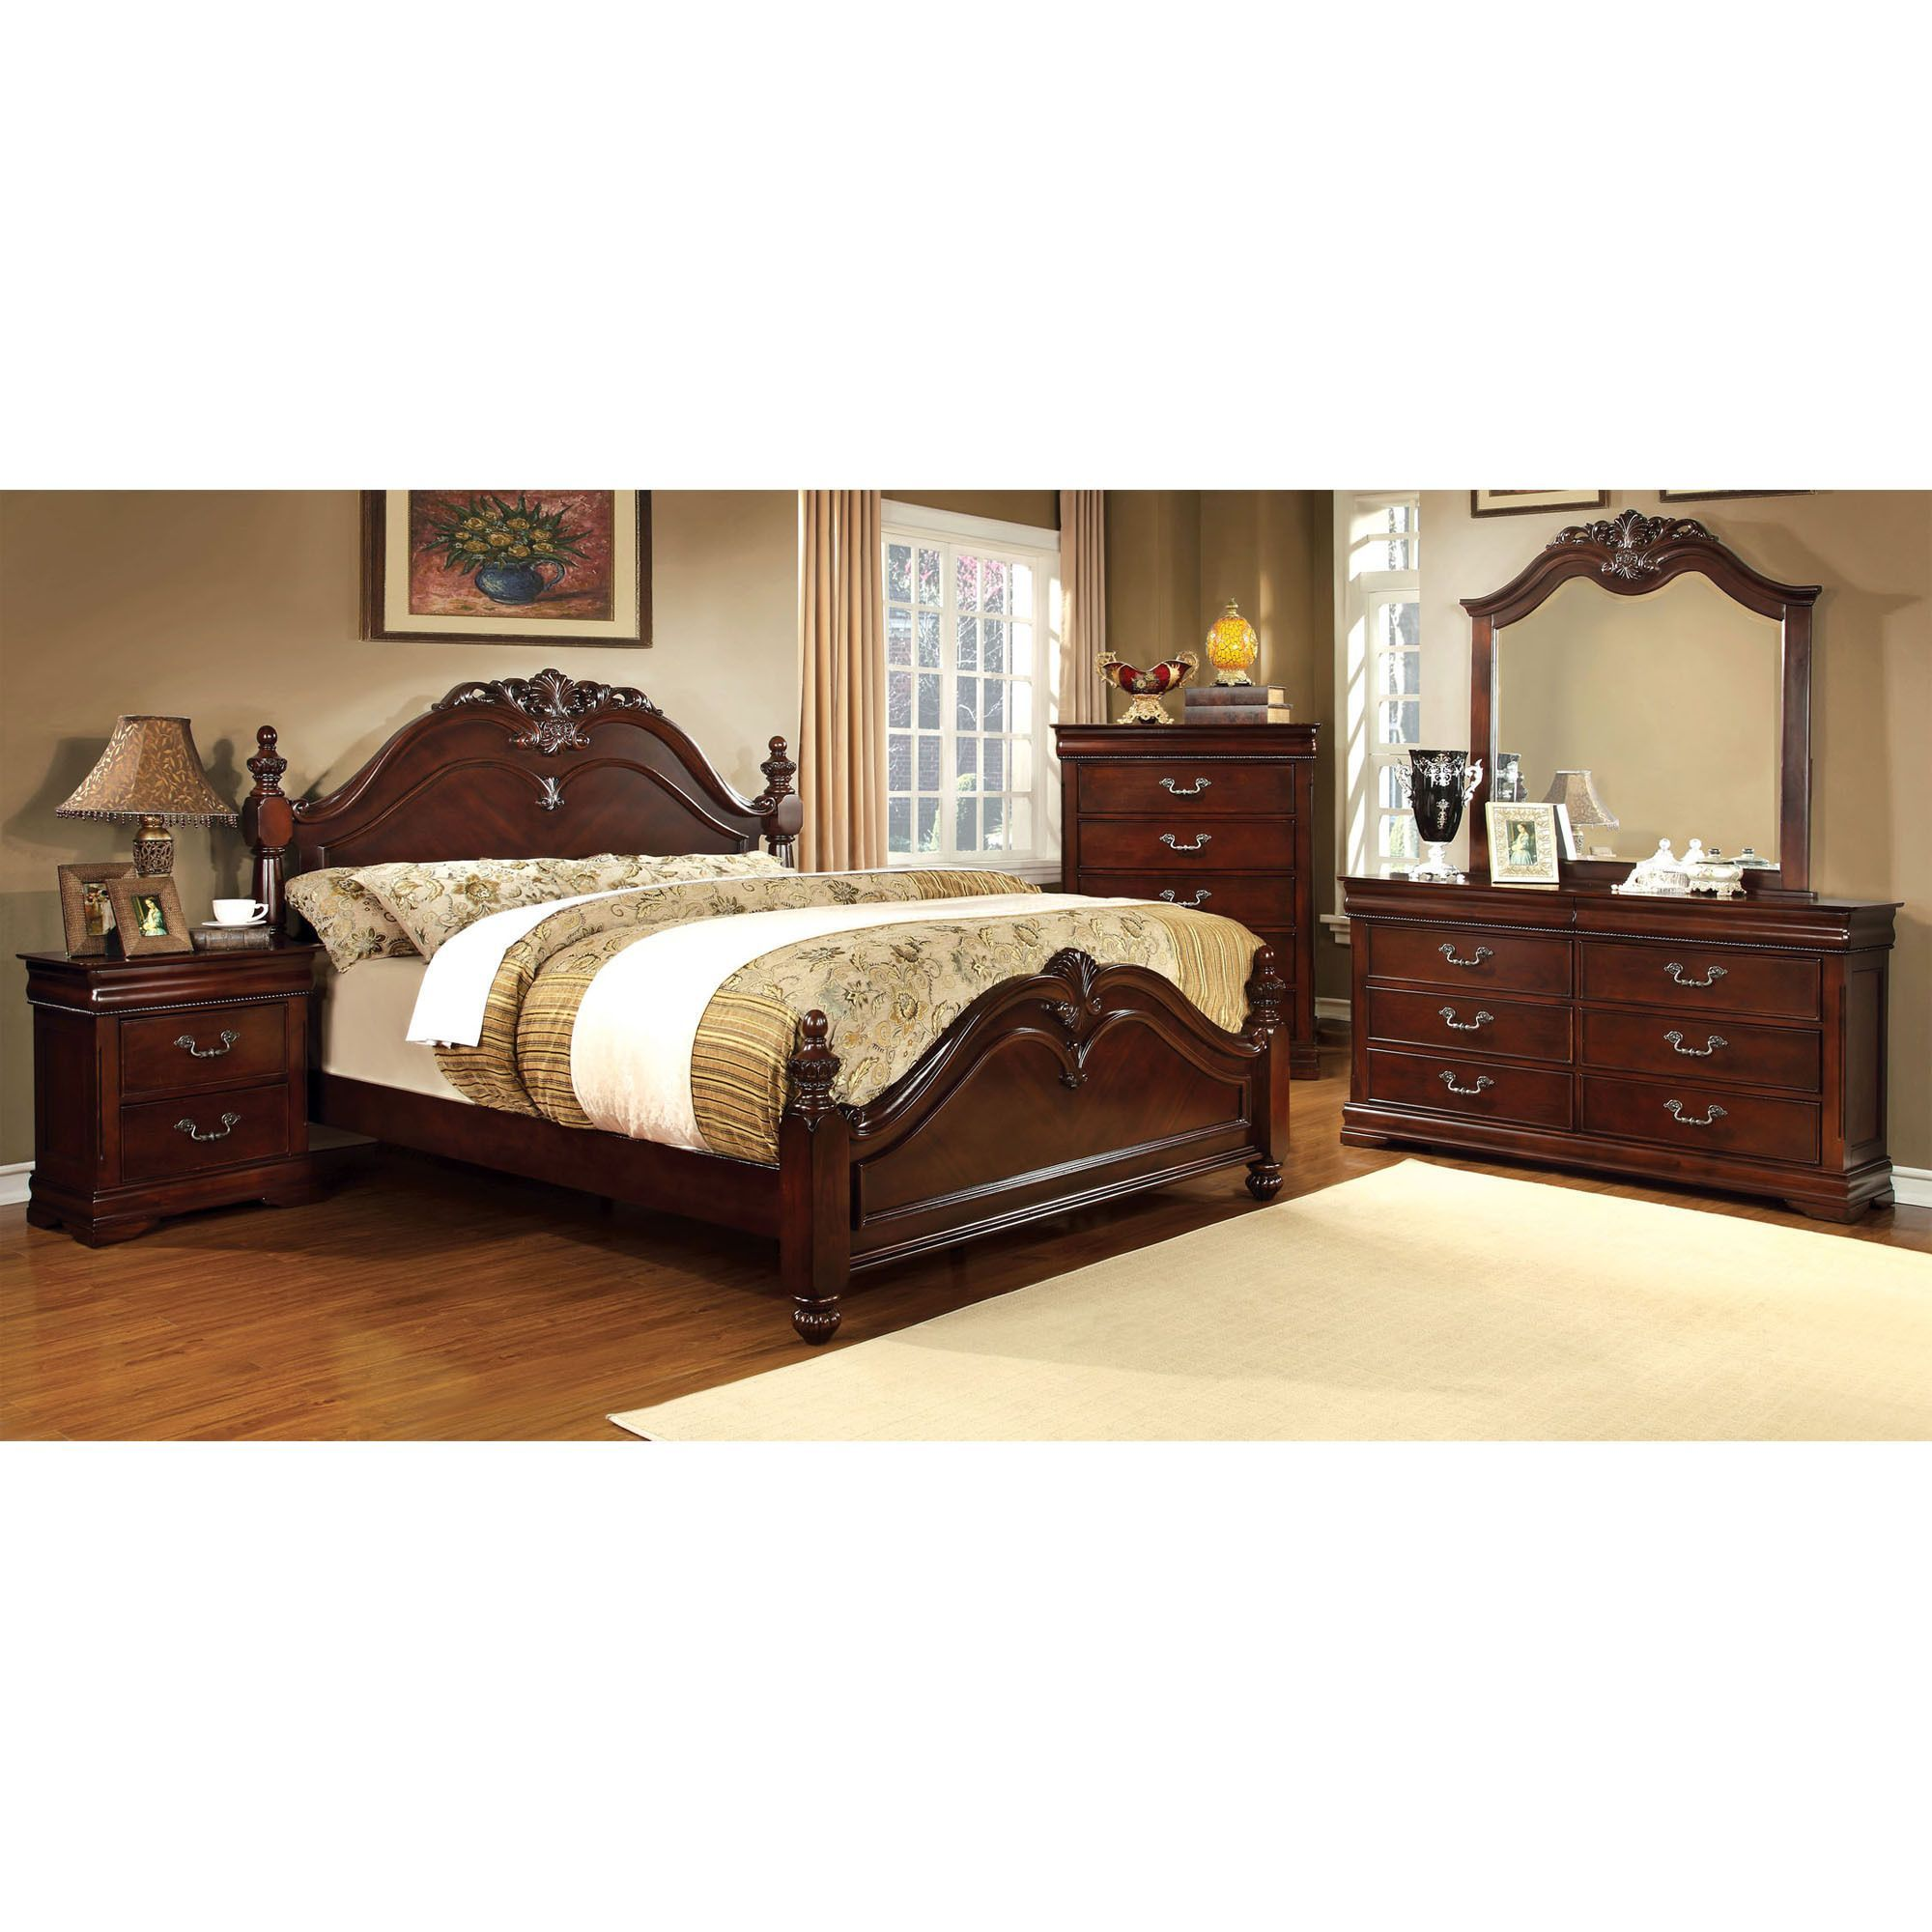 Furniture Home Goods: Metal Bedroom Furniture Home Goods: Free Shipping On